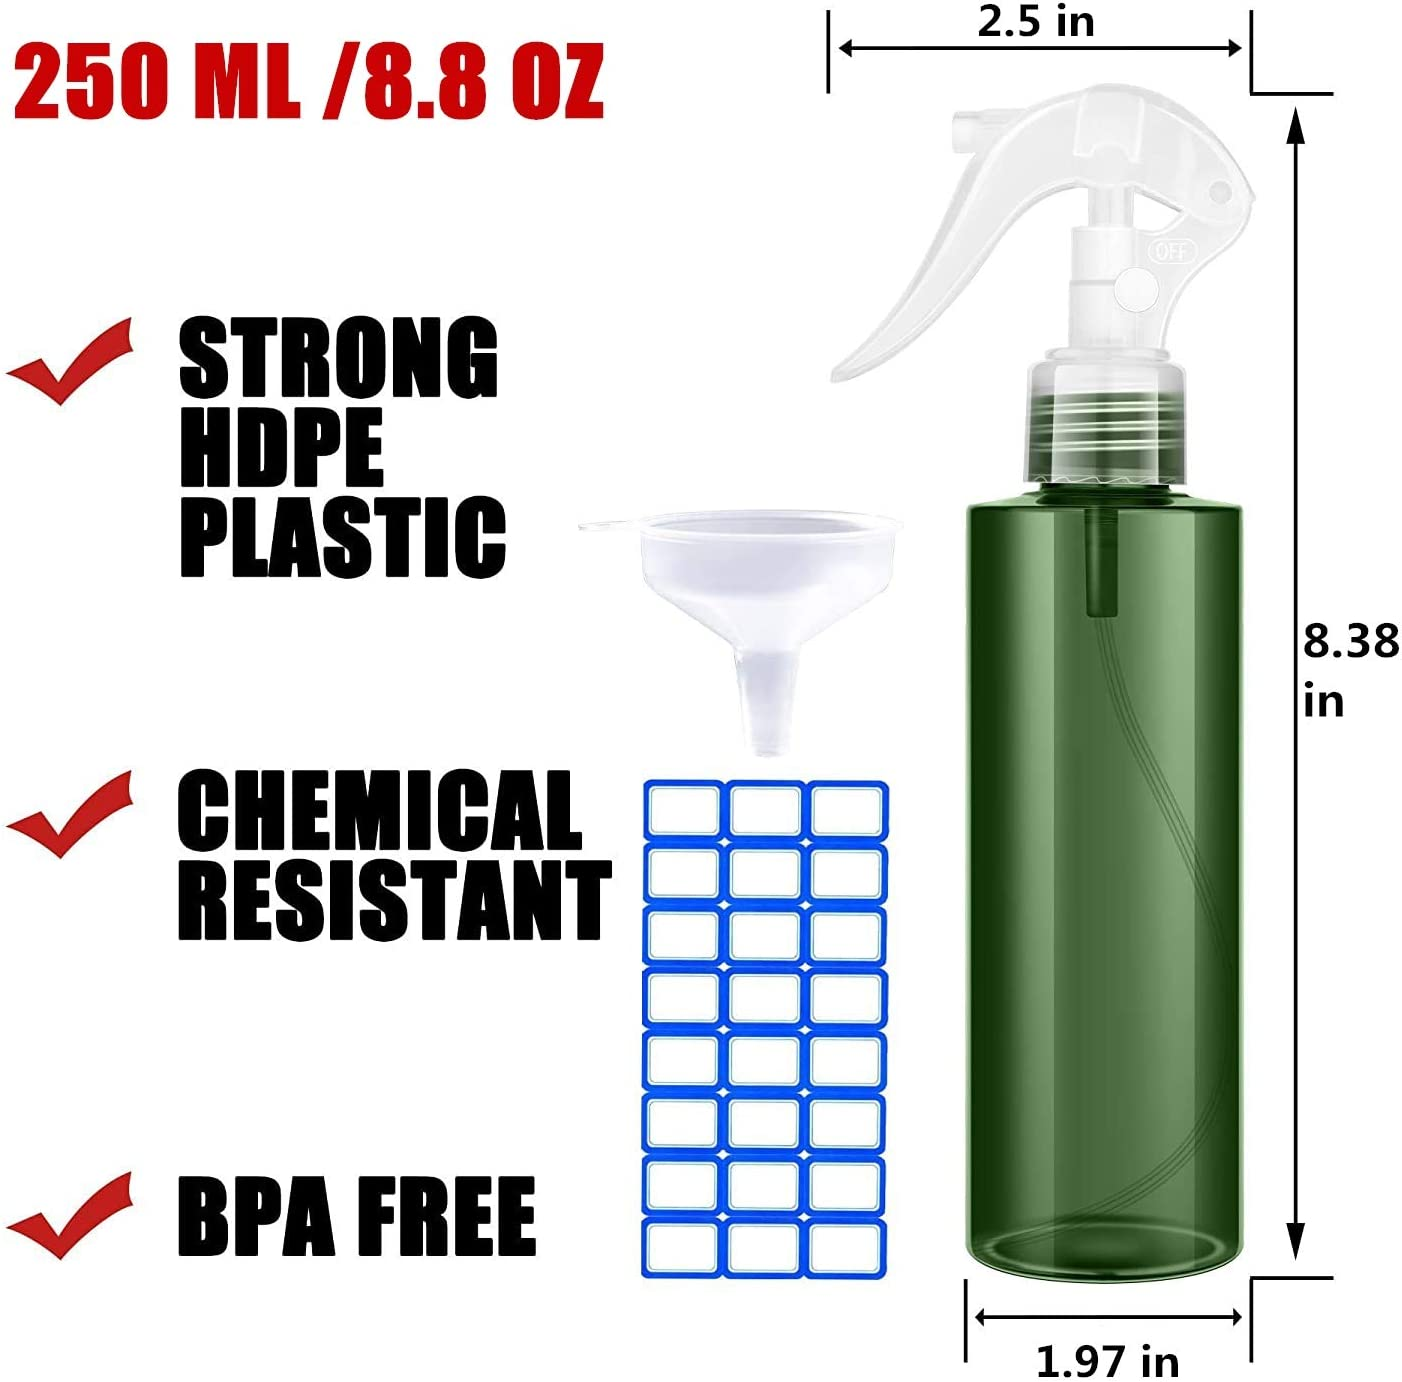 HighHerz 2 Pack Empty Hair Spray Bottle Mist Mode 250ml With Funnel & Lables, For Water | Plant | Cleaning, Blue Green